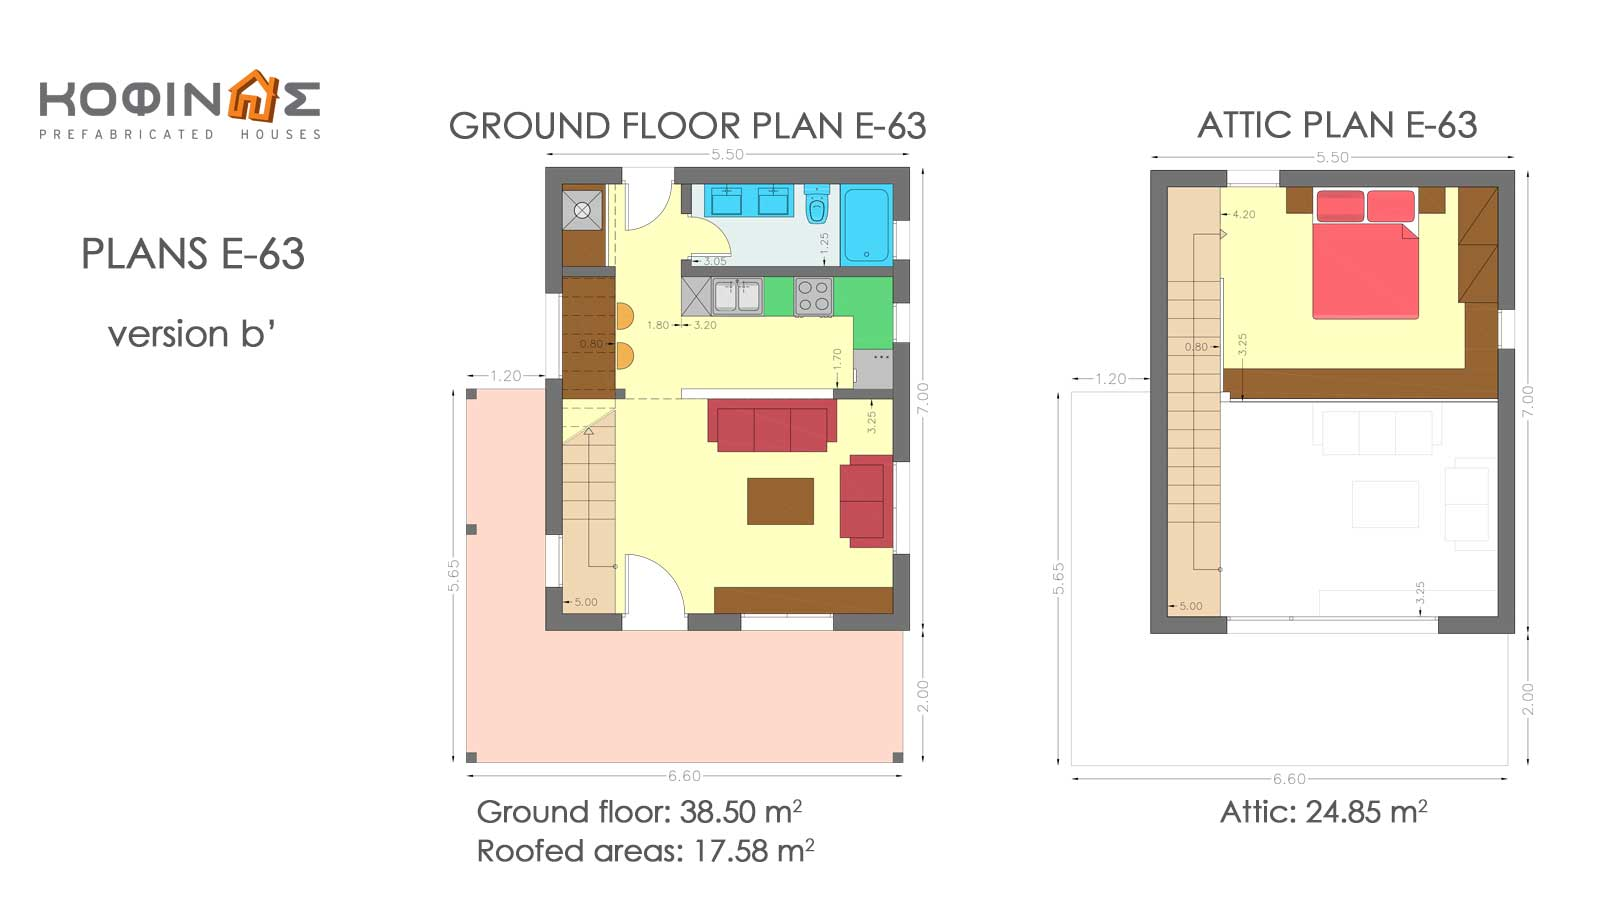 Complex of 1-story houses with attics E-63, total surface of 3 x 63,35 = 190,05 m²